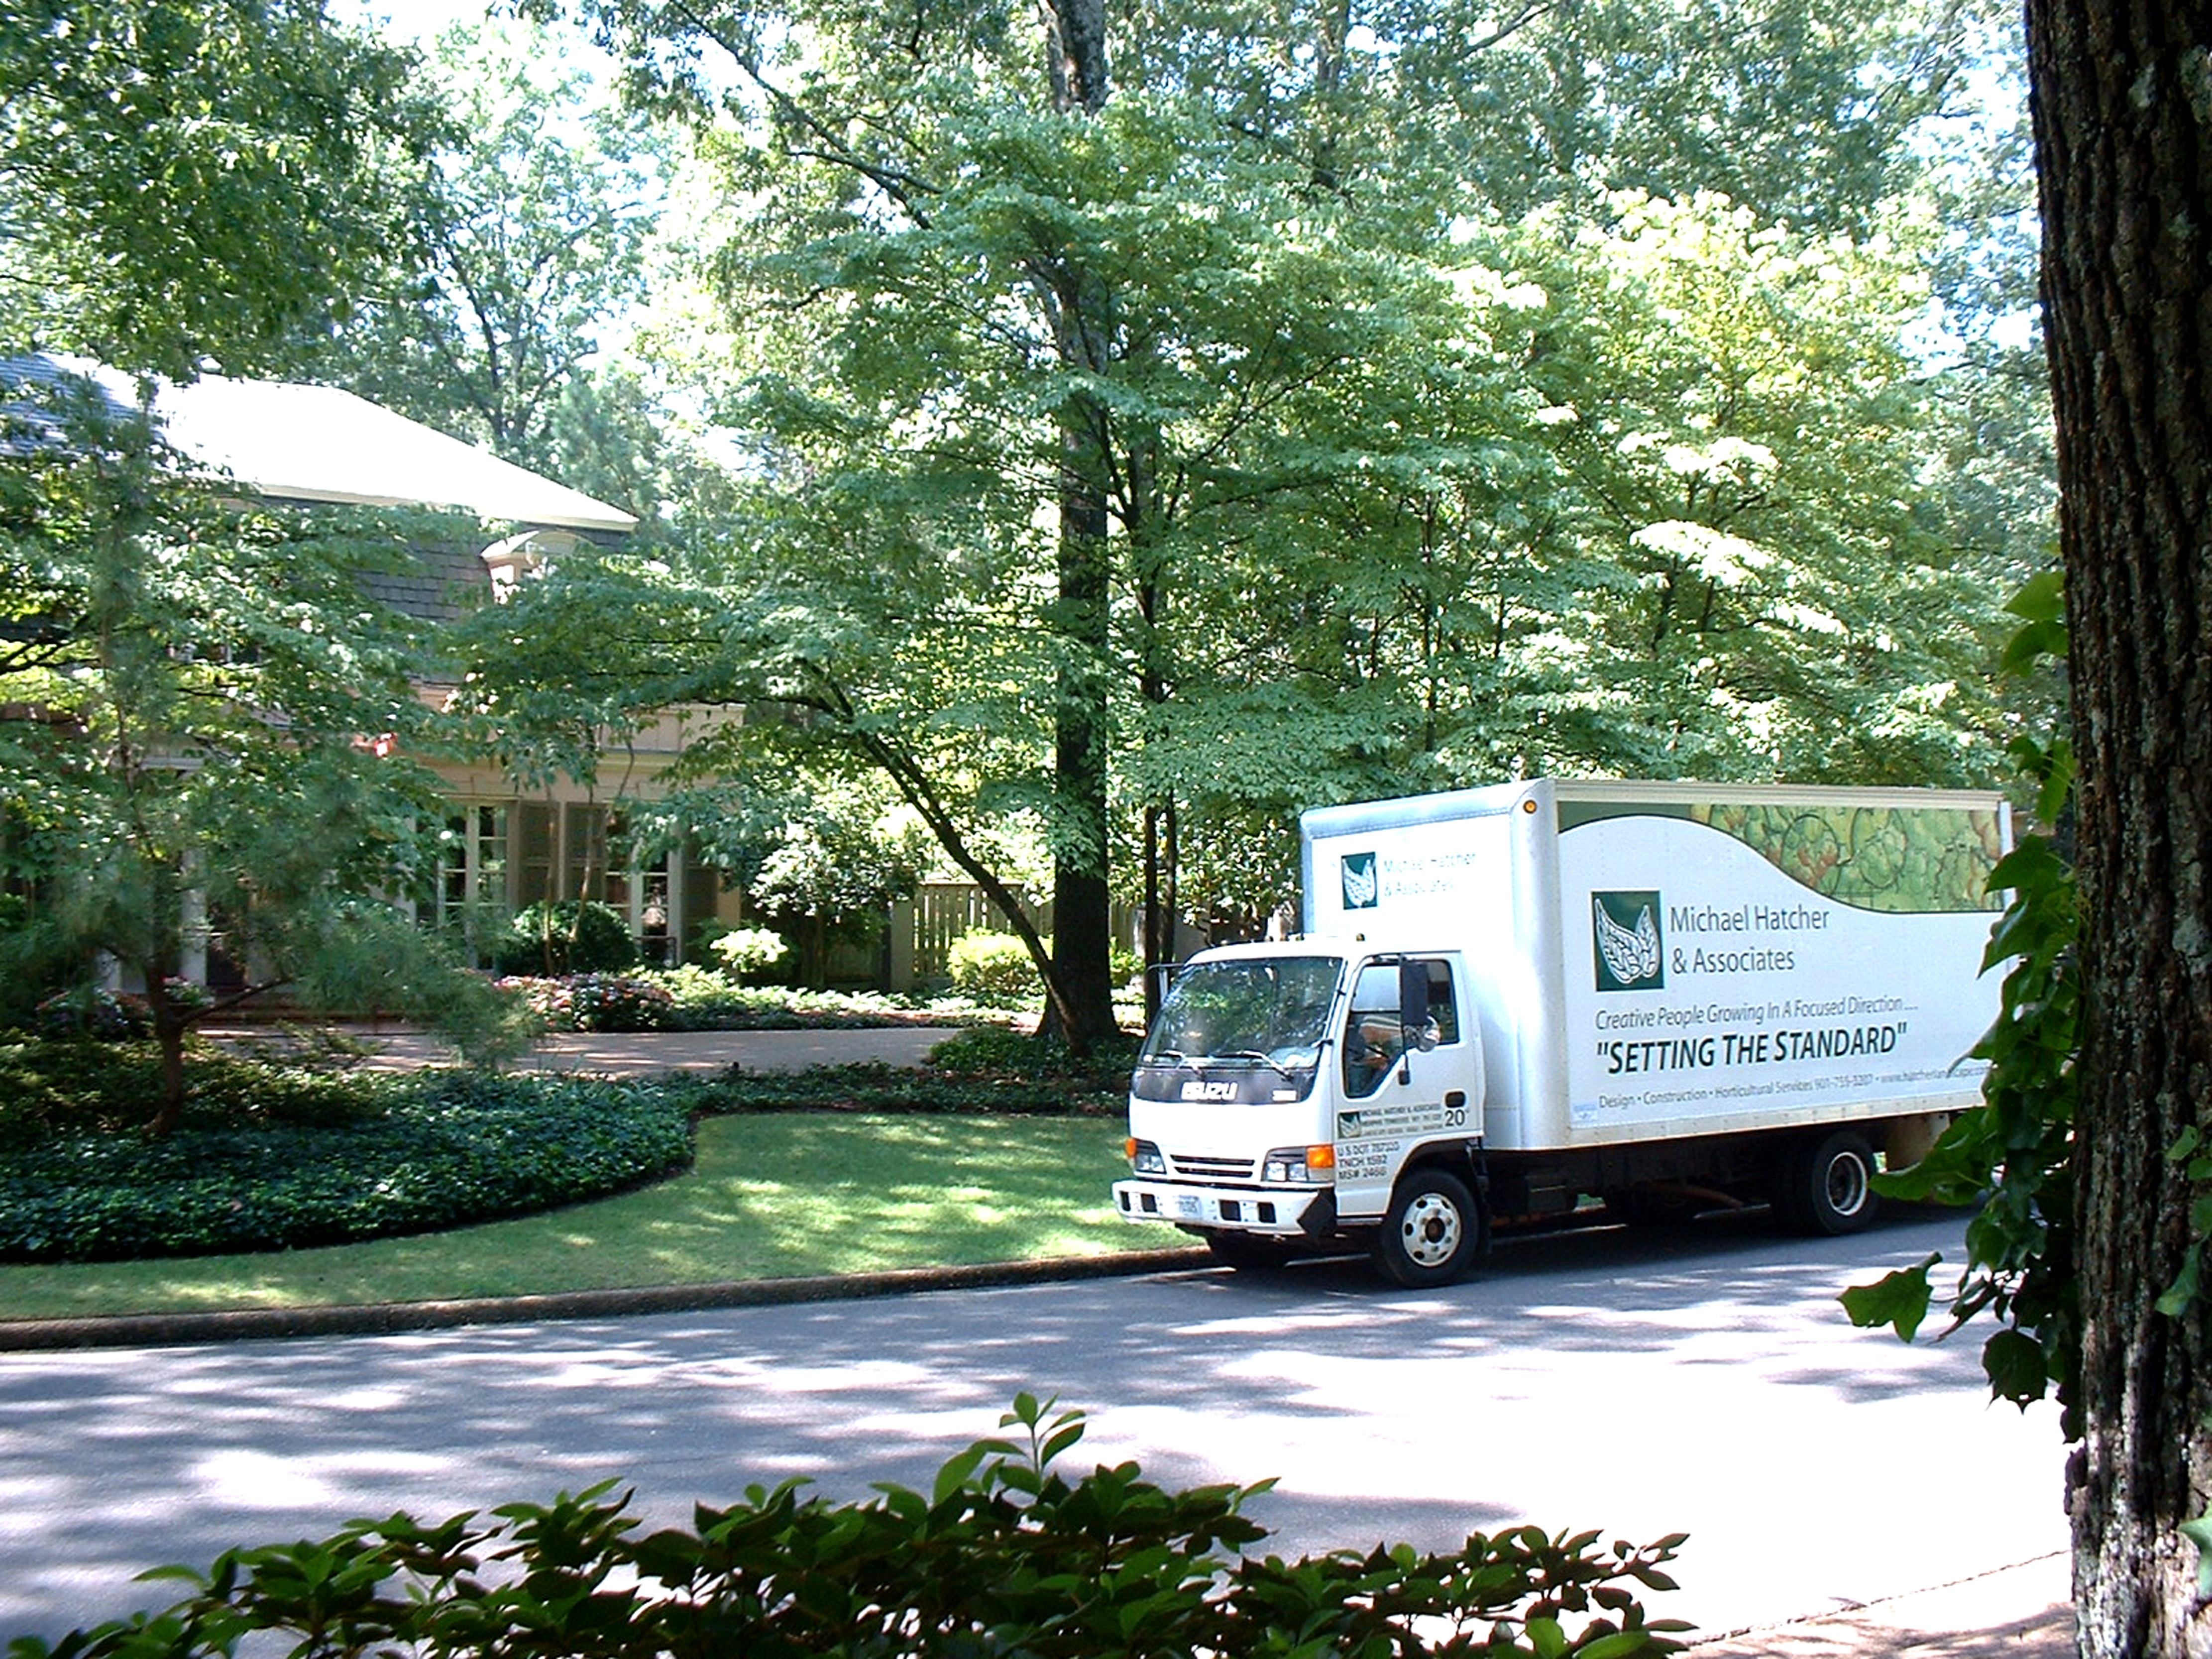 Michael Hatcher team providing lawn care services to a client in Memphis, TN